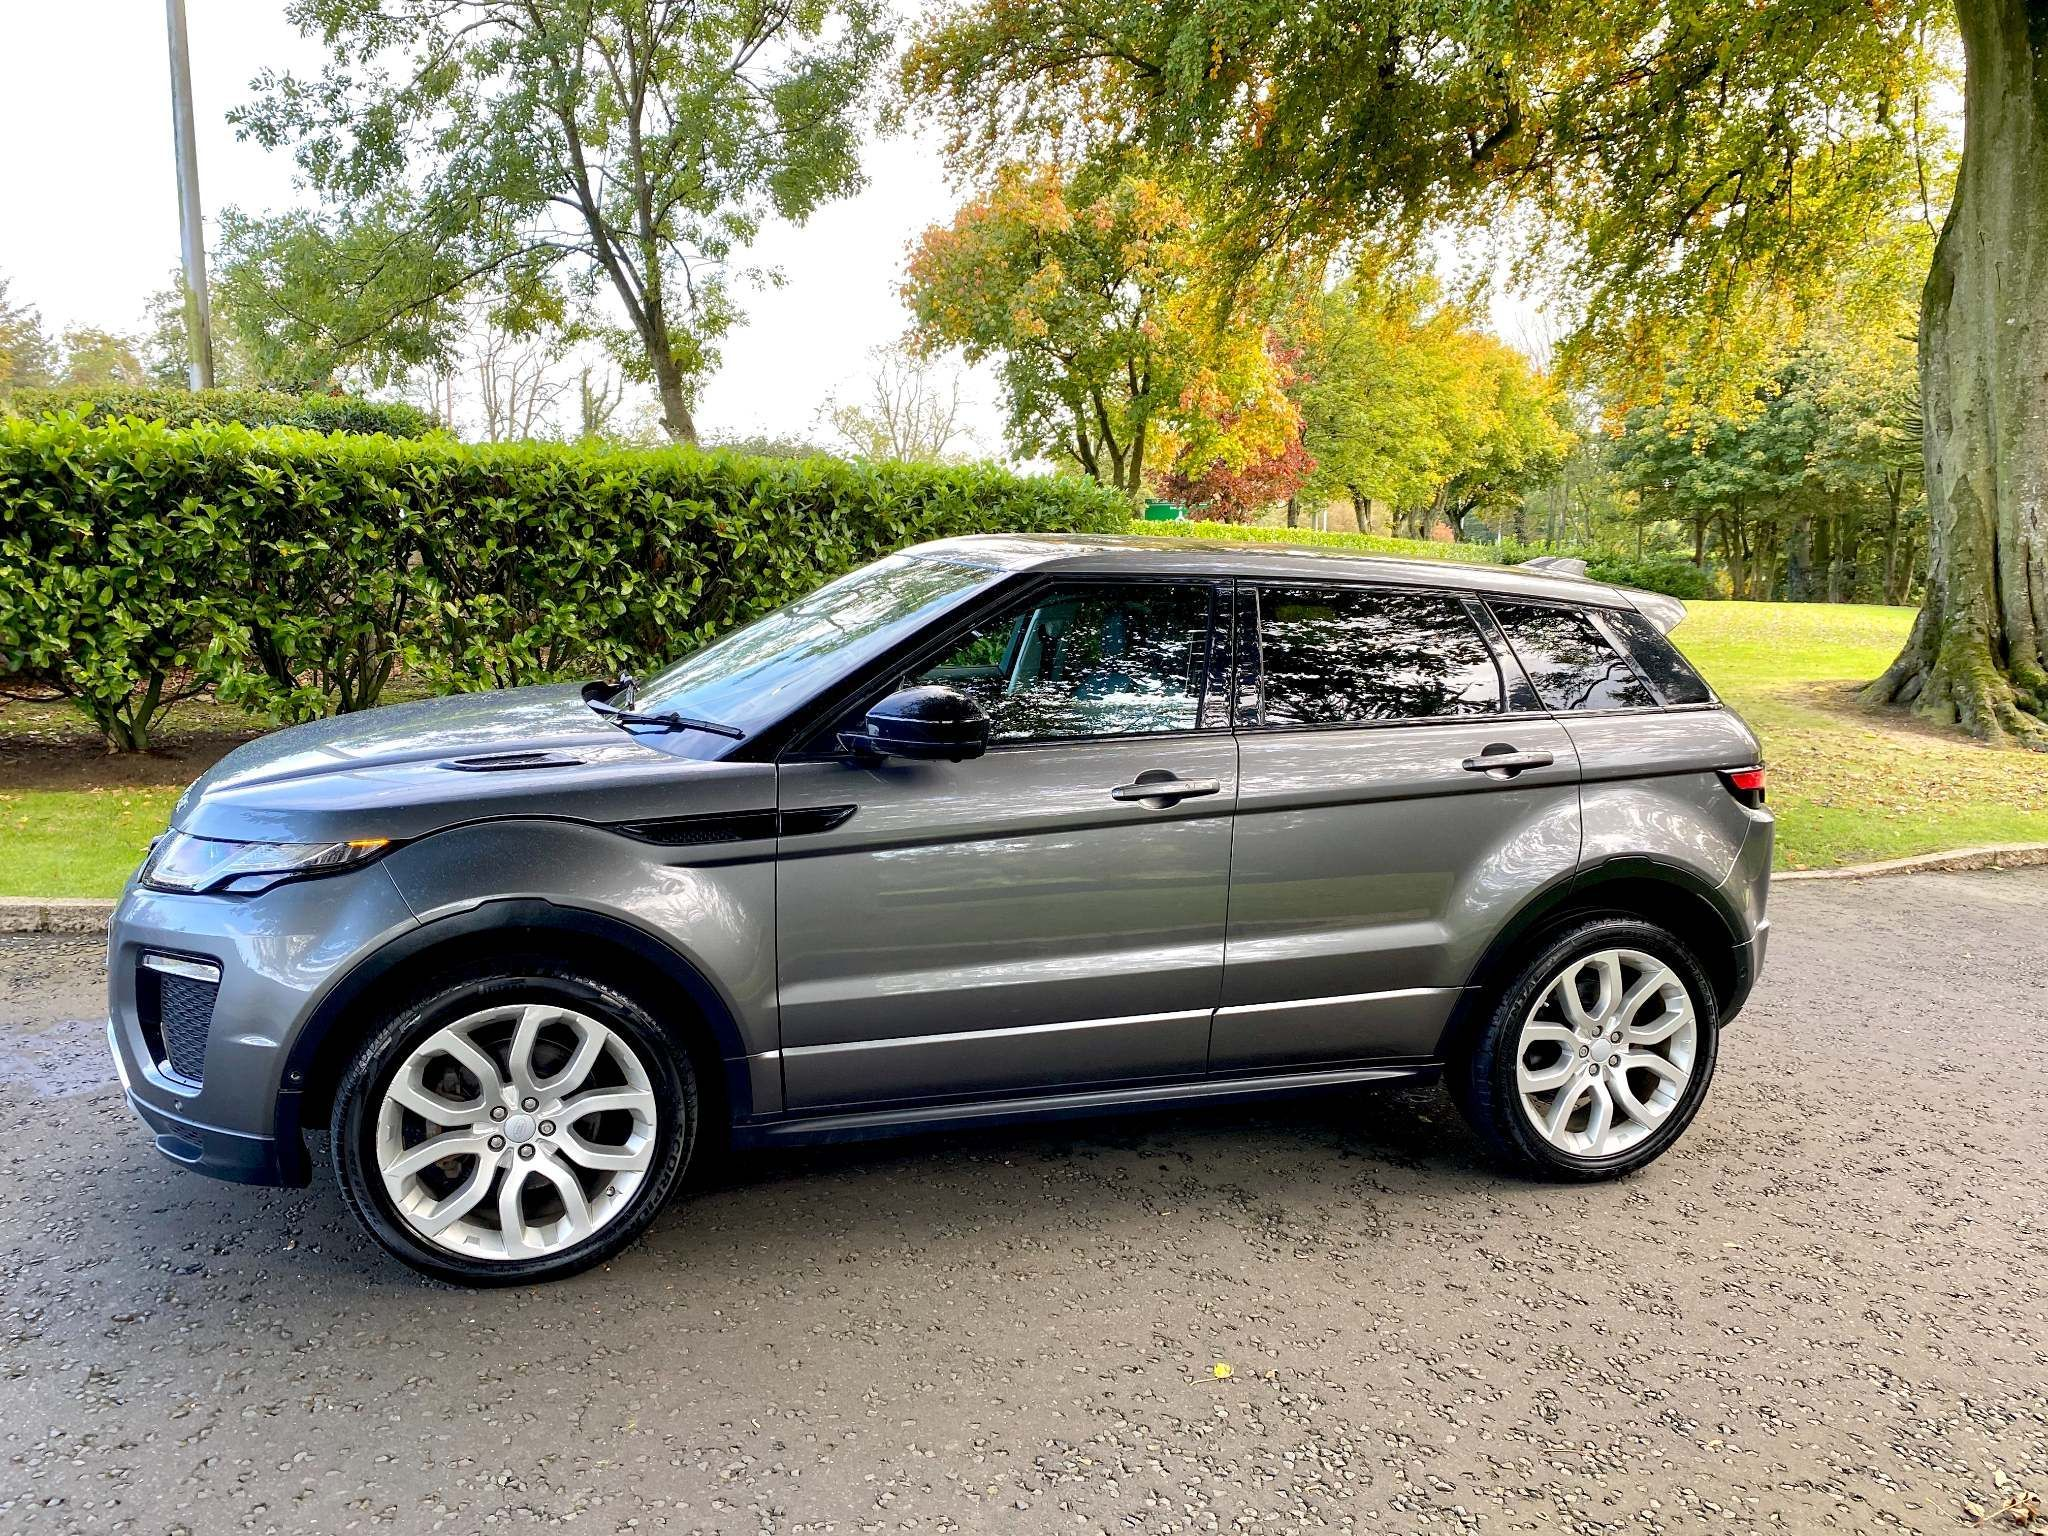 2015 Land Rover Range Rover Evoque 2.0 TD4 HSE Dynamic Lux Auto 4WD (s/s) 5dr Diesel Automatic – Moyway Motors Dungannon full